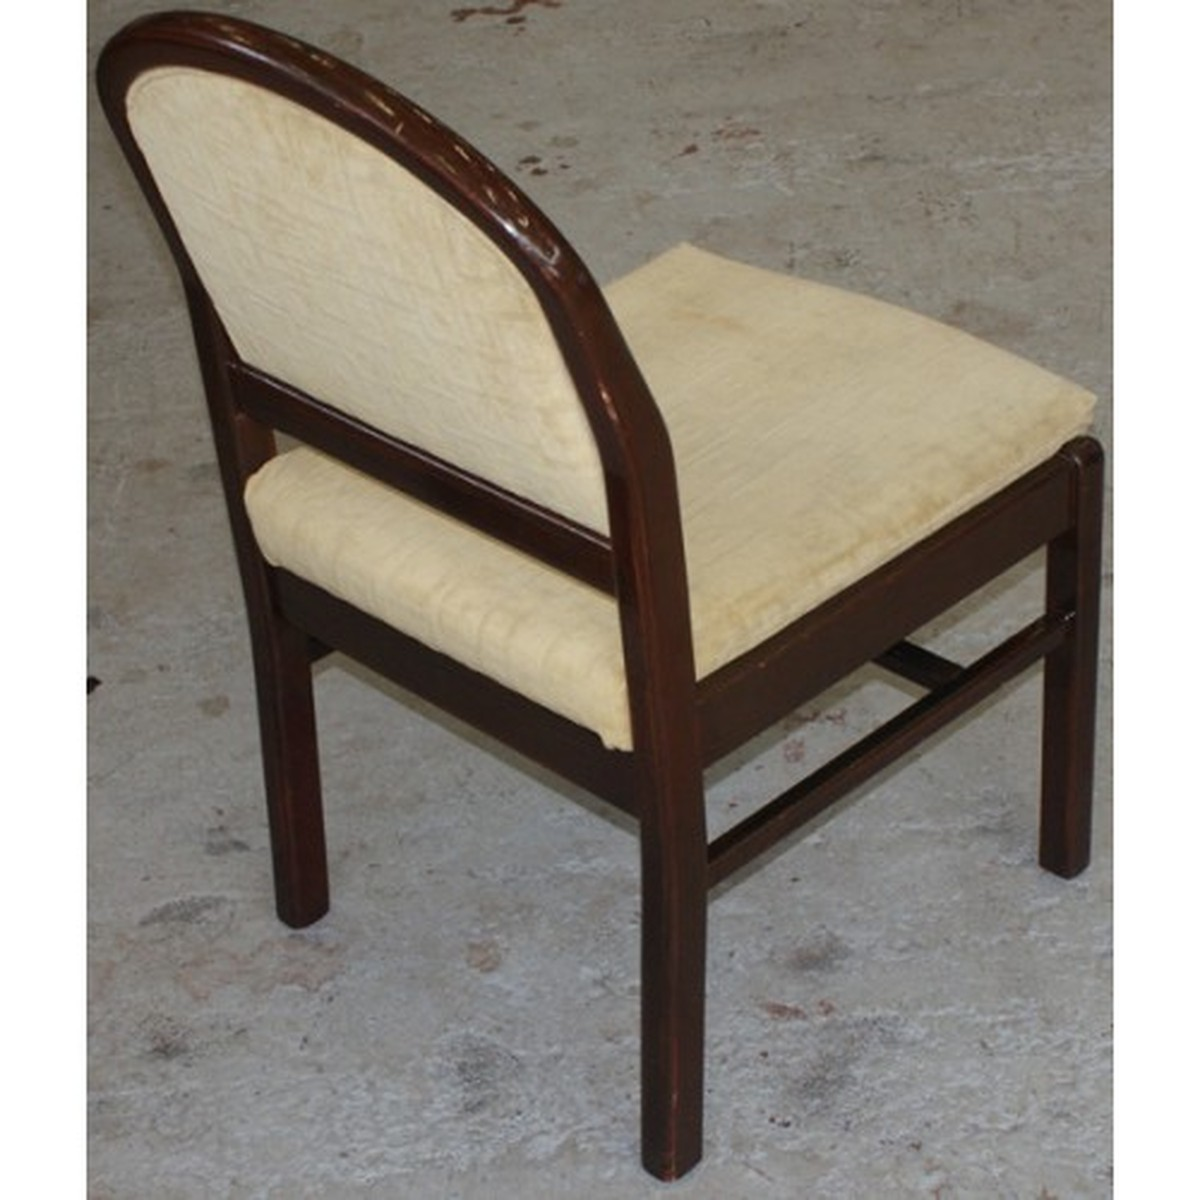 Secondhand prop shop mayfair furniture caterfair for Side chairs for sale